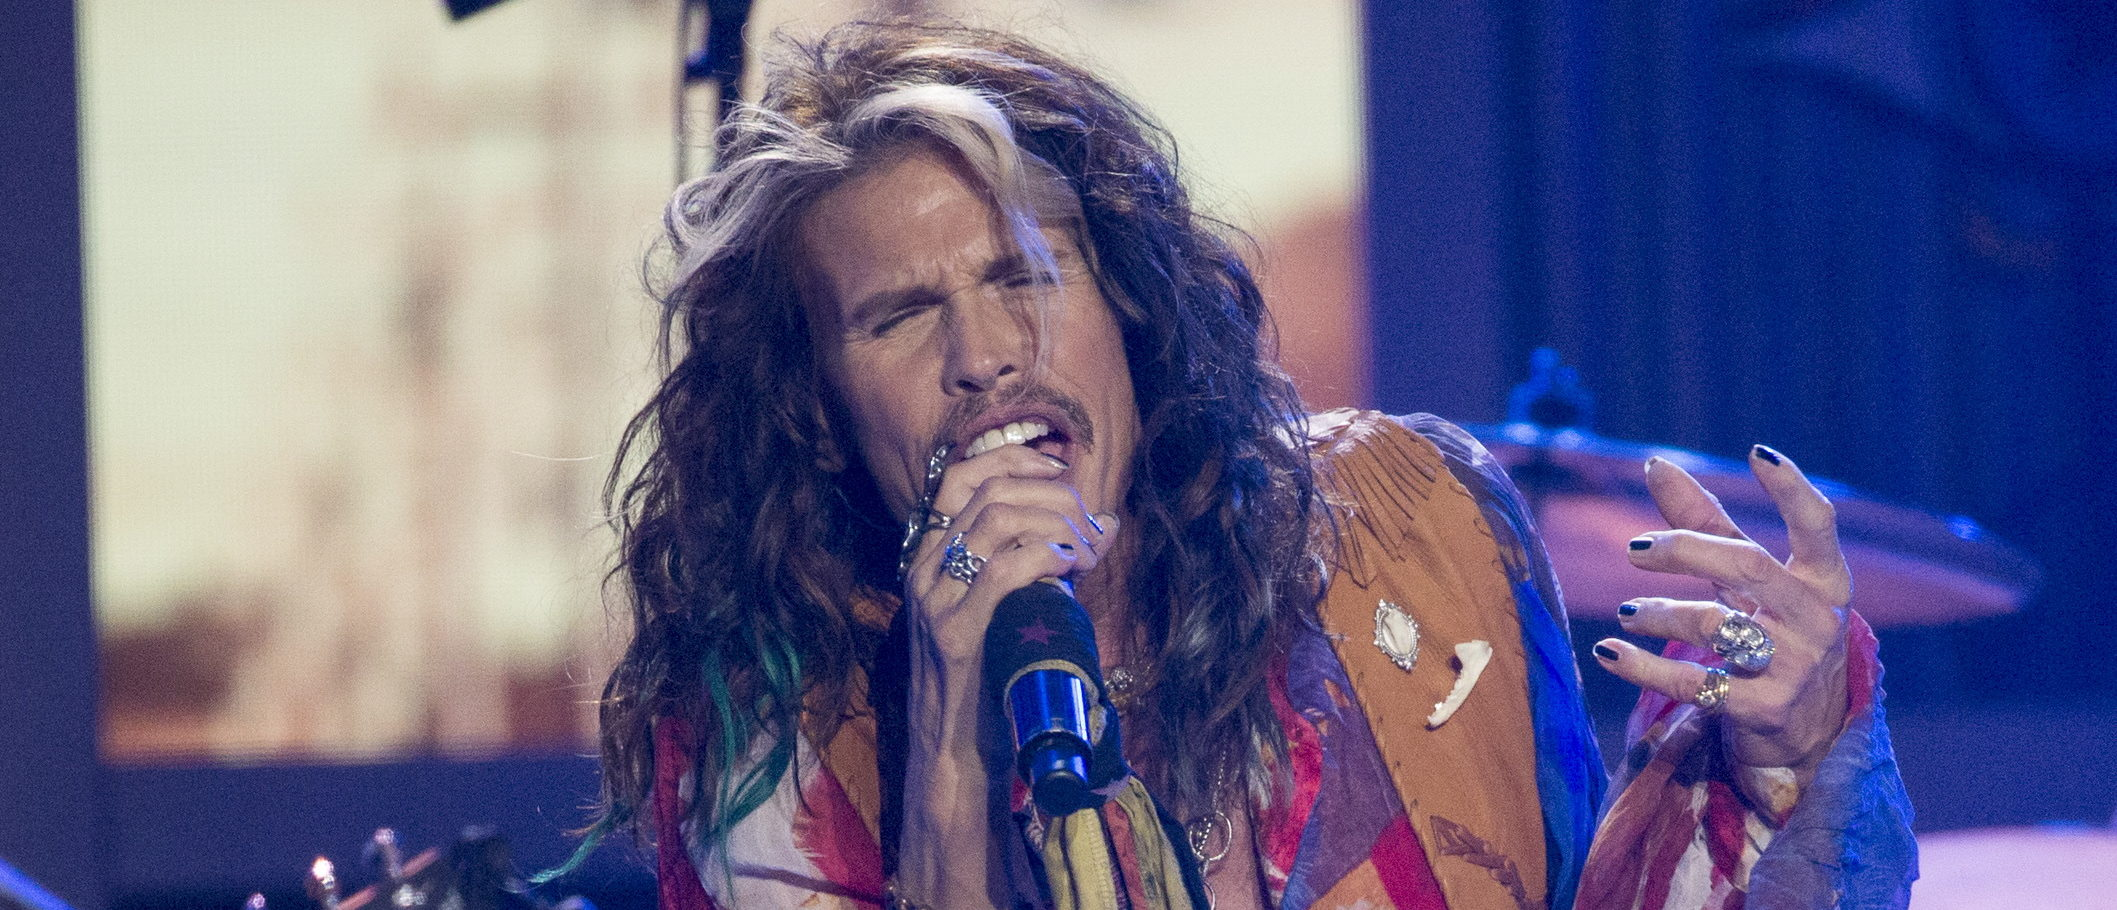 Singer Steven Tyler performs during the American Idol XIV 2015 Finale at Dolby theatre in Hollywood, California May 13, 2015. (REUTERS/Mario Anzuoni)